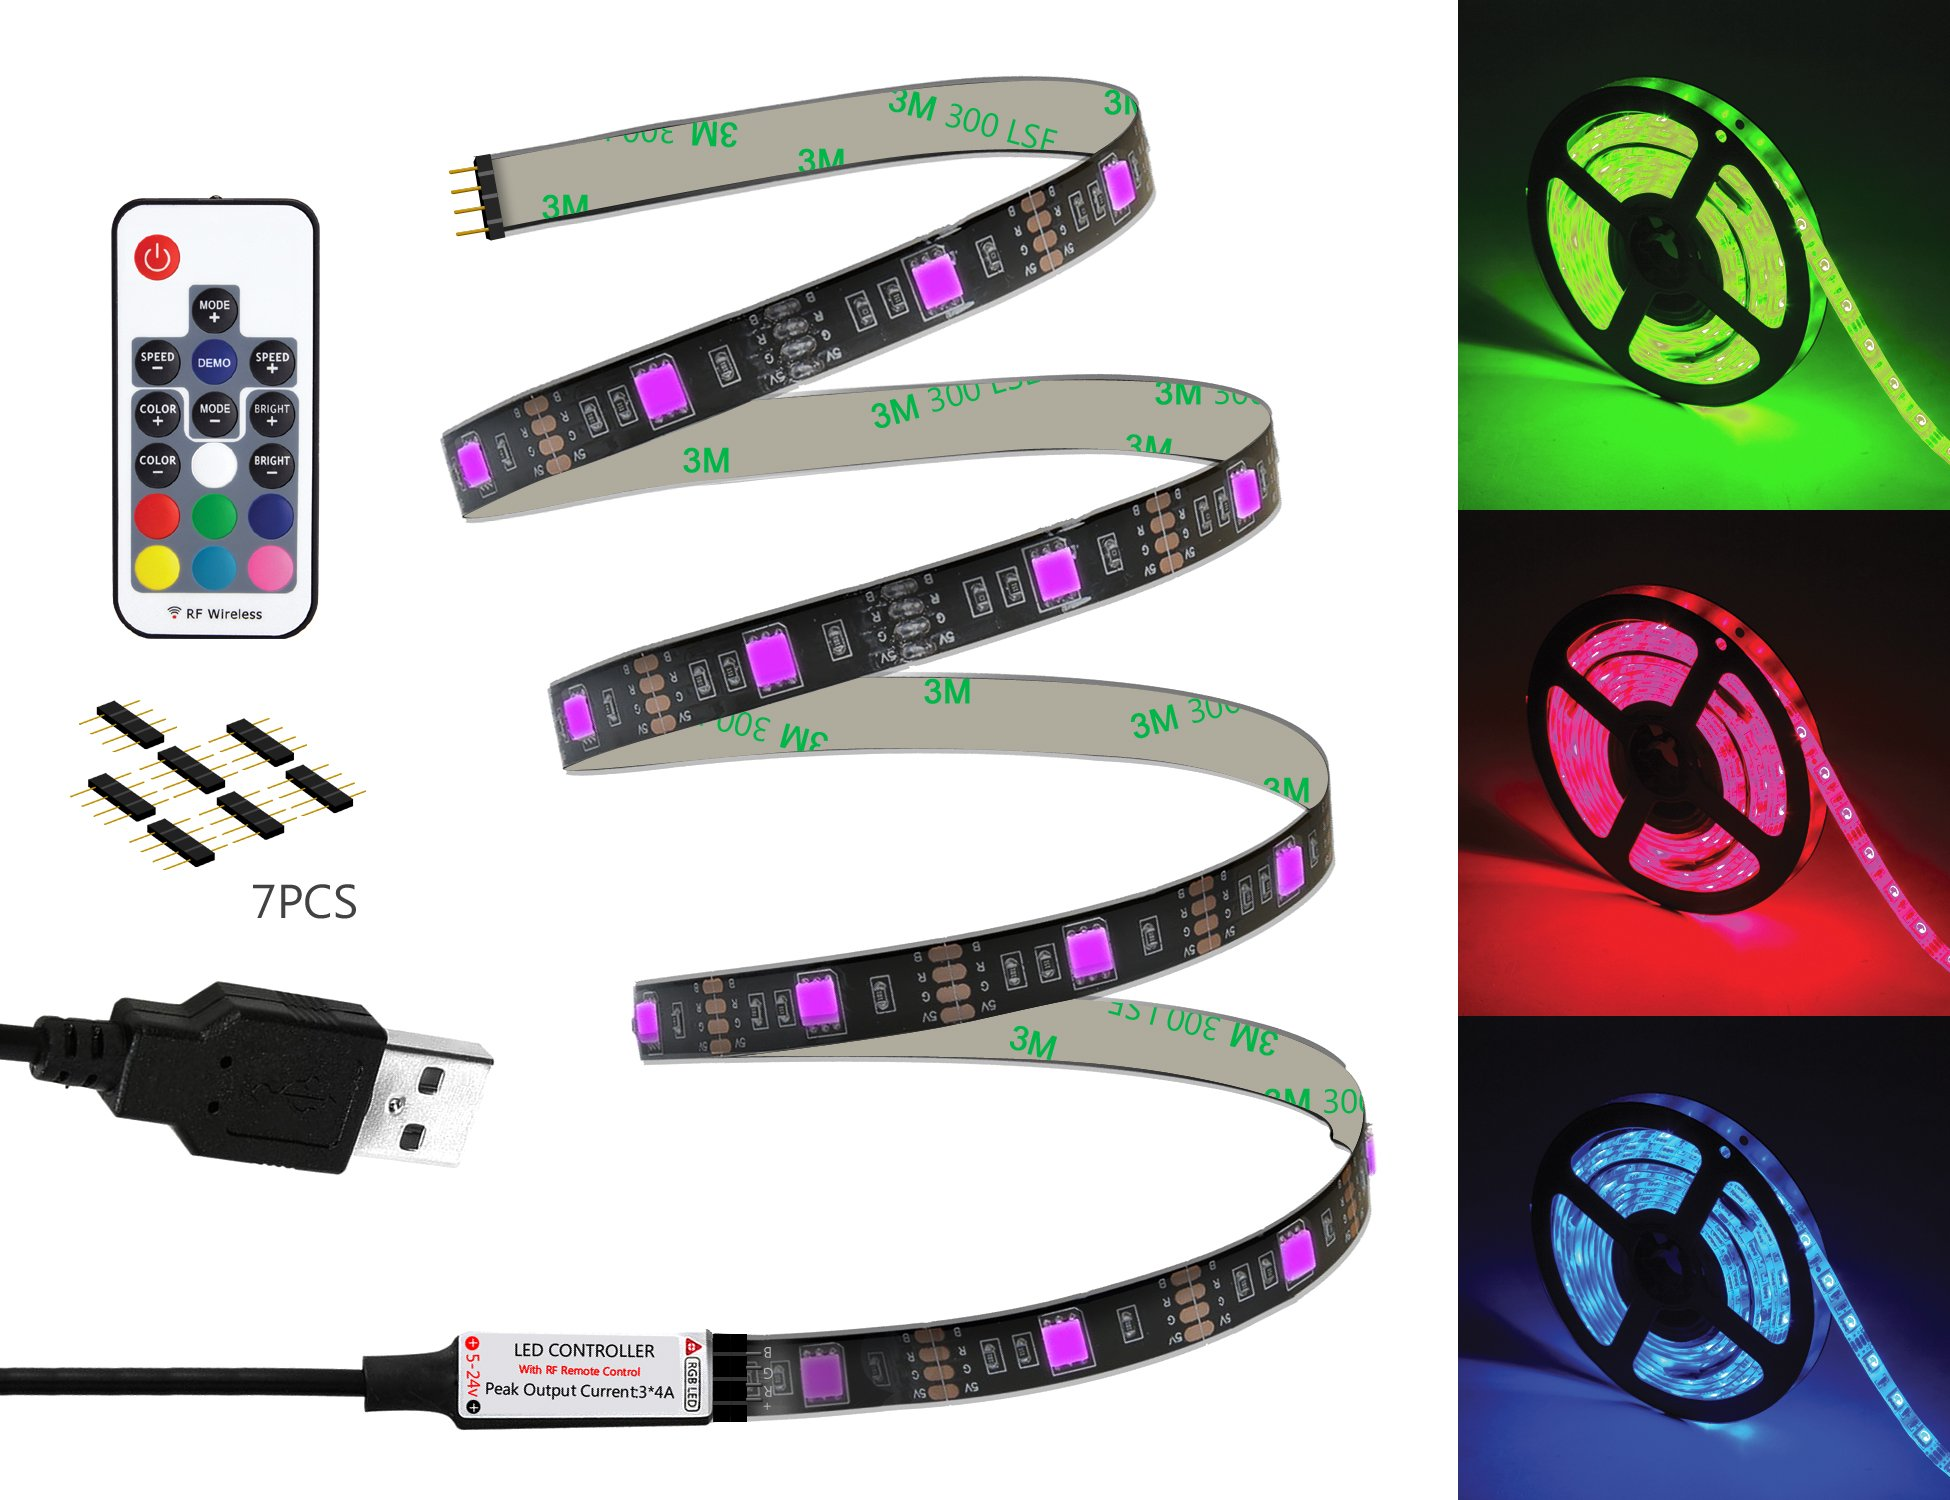 WYNK LED Strip Lights with Remote USB Back Light Fixture DIY 5050RGB Flexible 3.4M 104LED Color Changing Full Kit + 4 Connector + Remote Controller for Computer/TV/Home/Kitchen/Christmas Decorative by WYNK (Image #3)